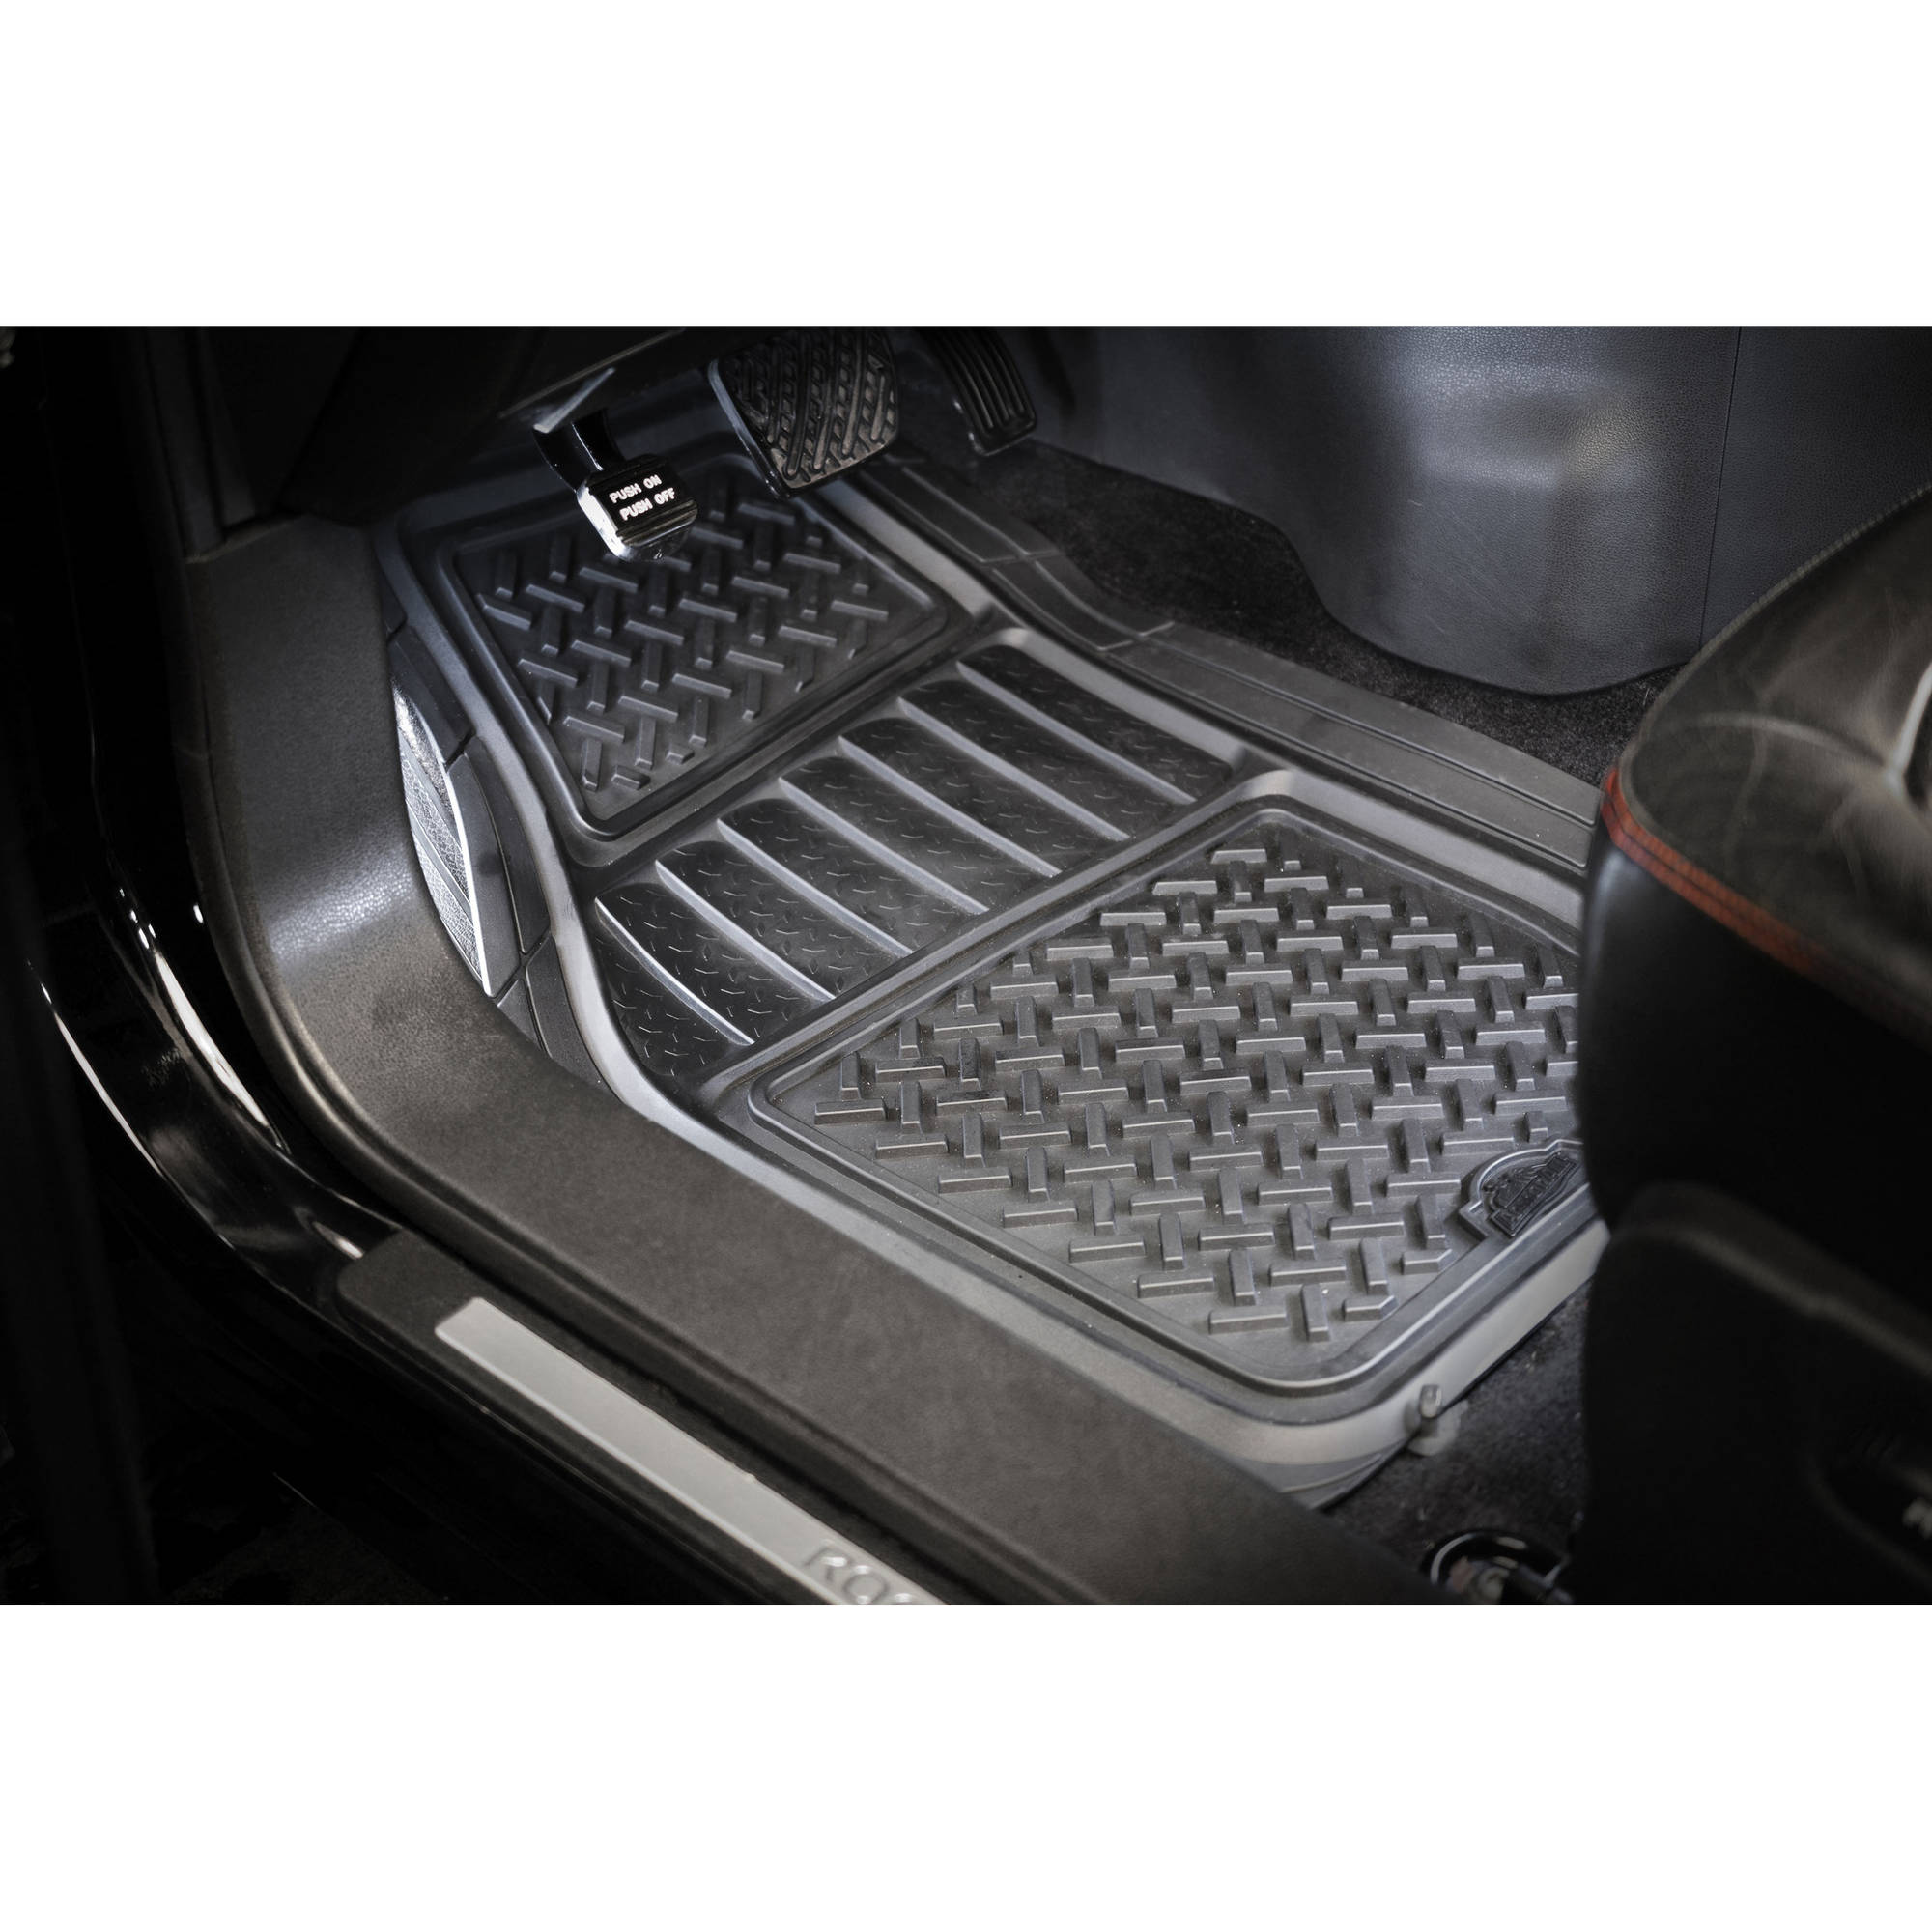 discontinued nla car oem bimmertips option mat mats floormat com floor rubber bmw